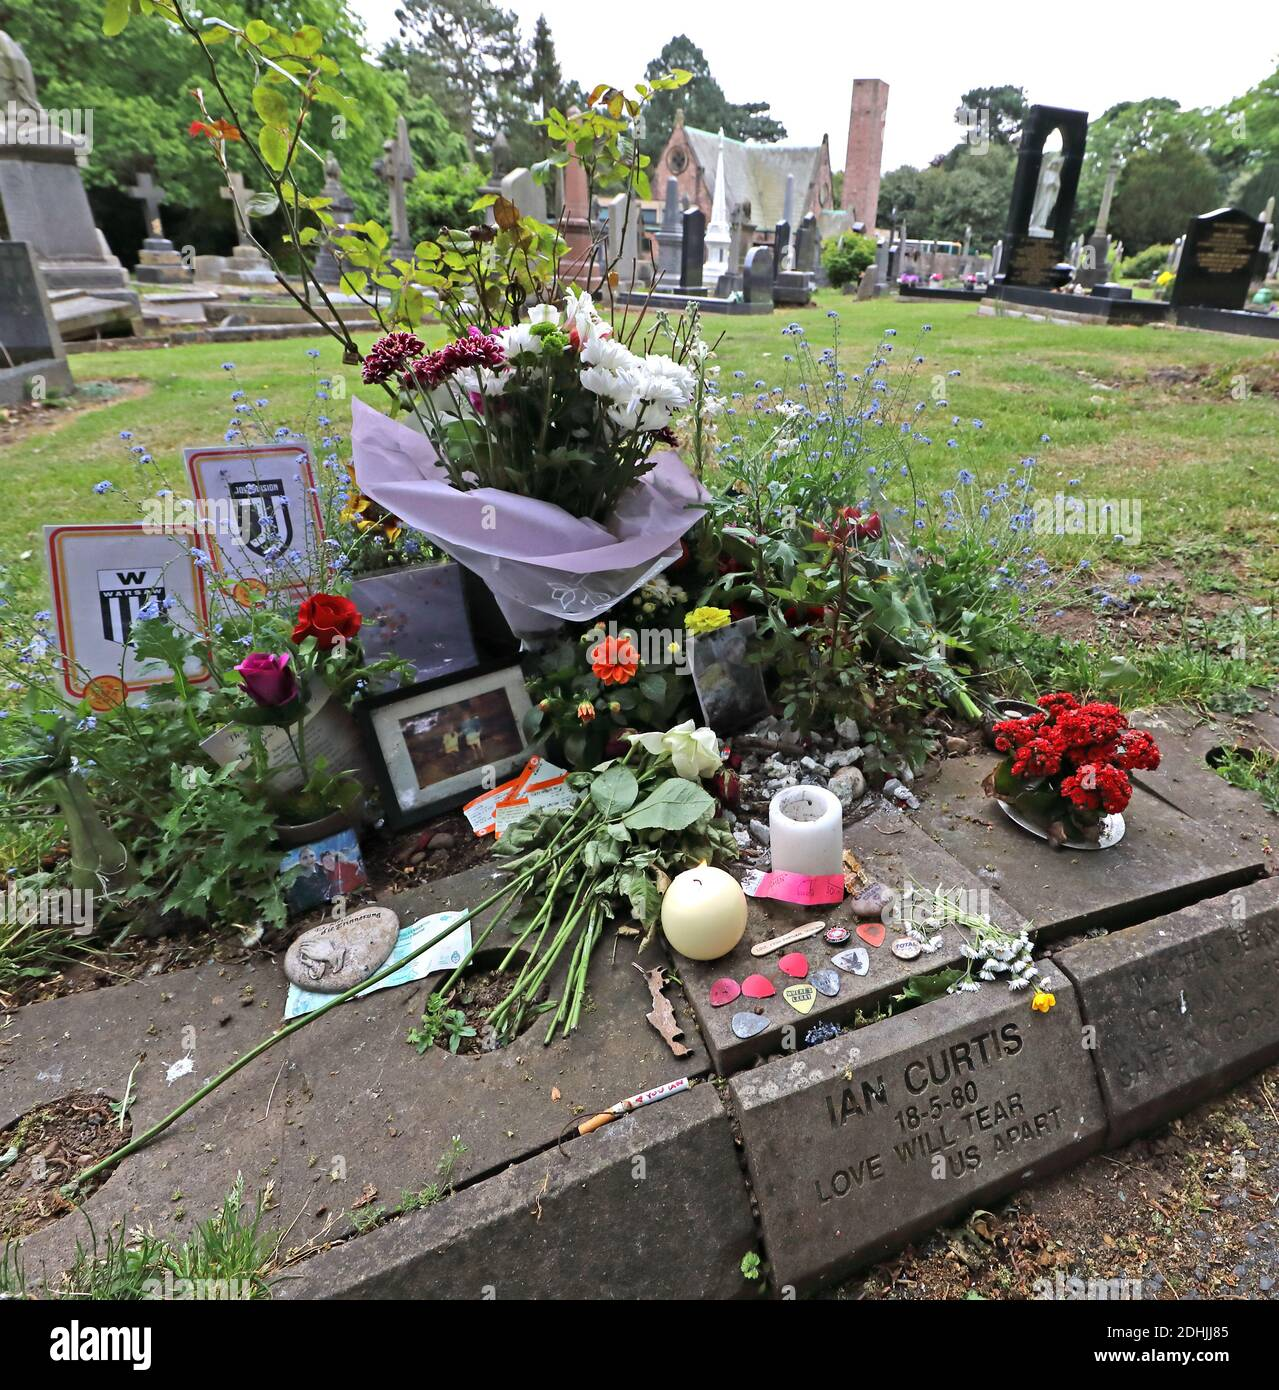 @HotpixUK,HotpixUK,GoTonySmith,grave stone,gravestone,18/05/1980,musicial,SK10,English,singer,songwriter,singer-songwriter,Factory,Factory label,song writer,flowers,pictures,cards,Love will tear us apart,logo,Unknown pleasures logo,plectrums,influences,influential,band,18-5-80,inscription,15 July 1956 – 18 May 1980,suicide,candle,candles,ticket,notes,paper,shrine,shes lost control,loveWillTearUsApart